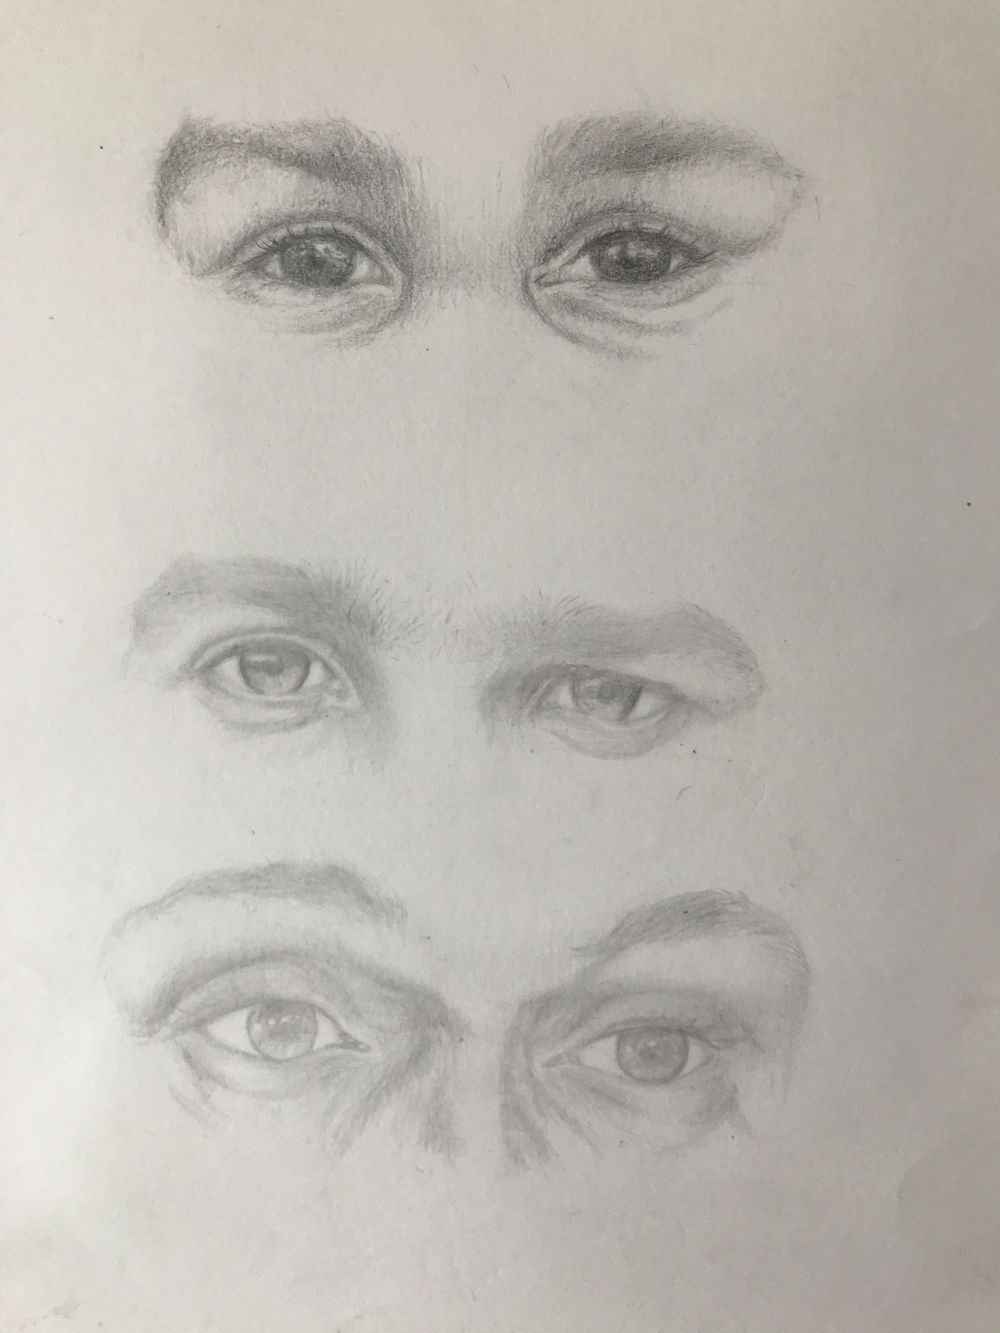 eyes, noses and lips - image 3 - student project